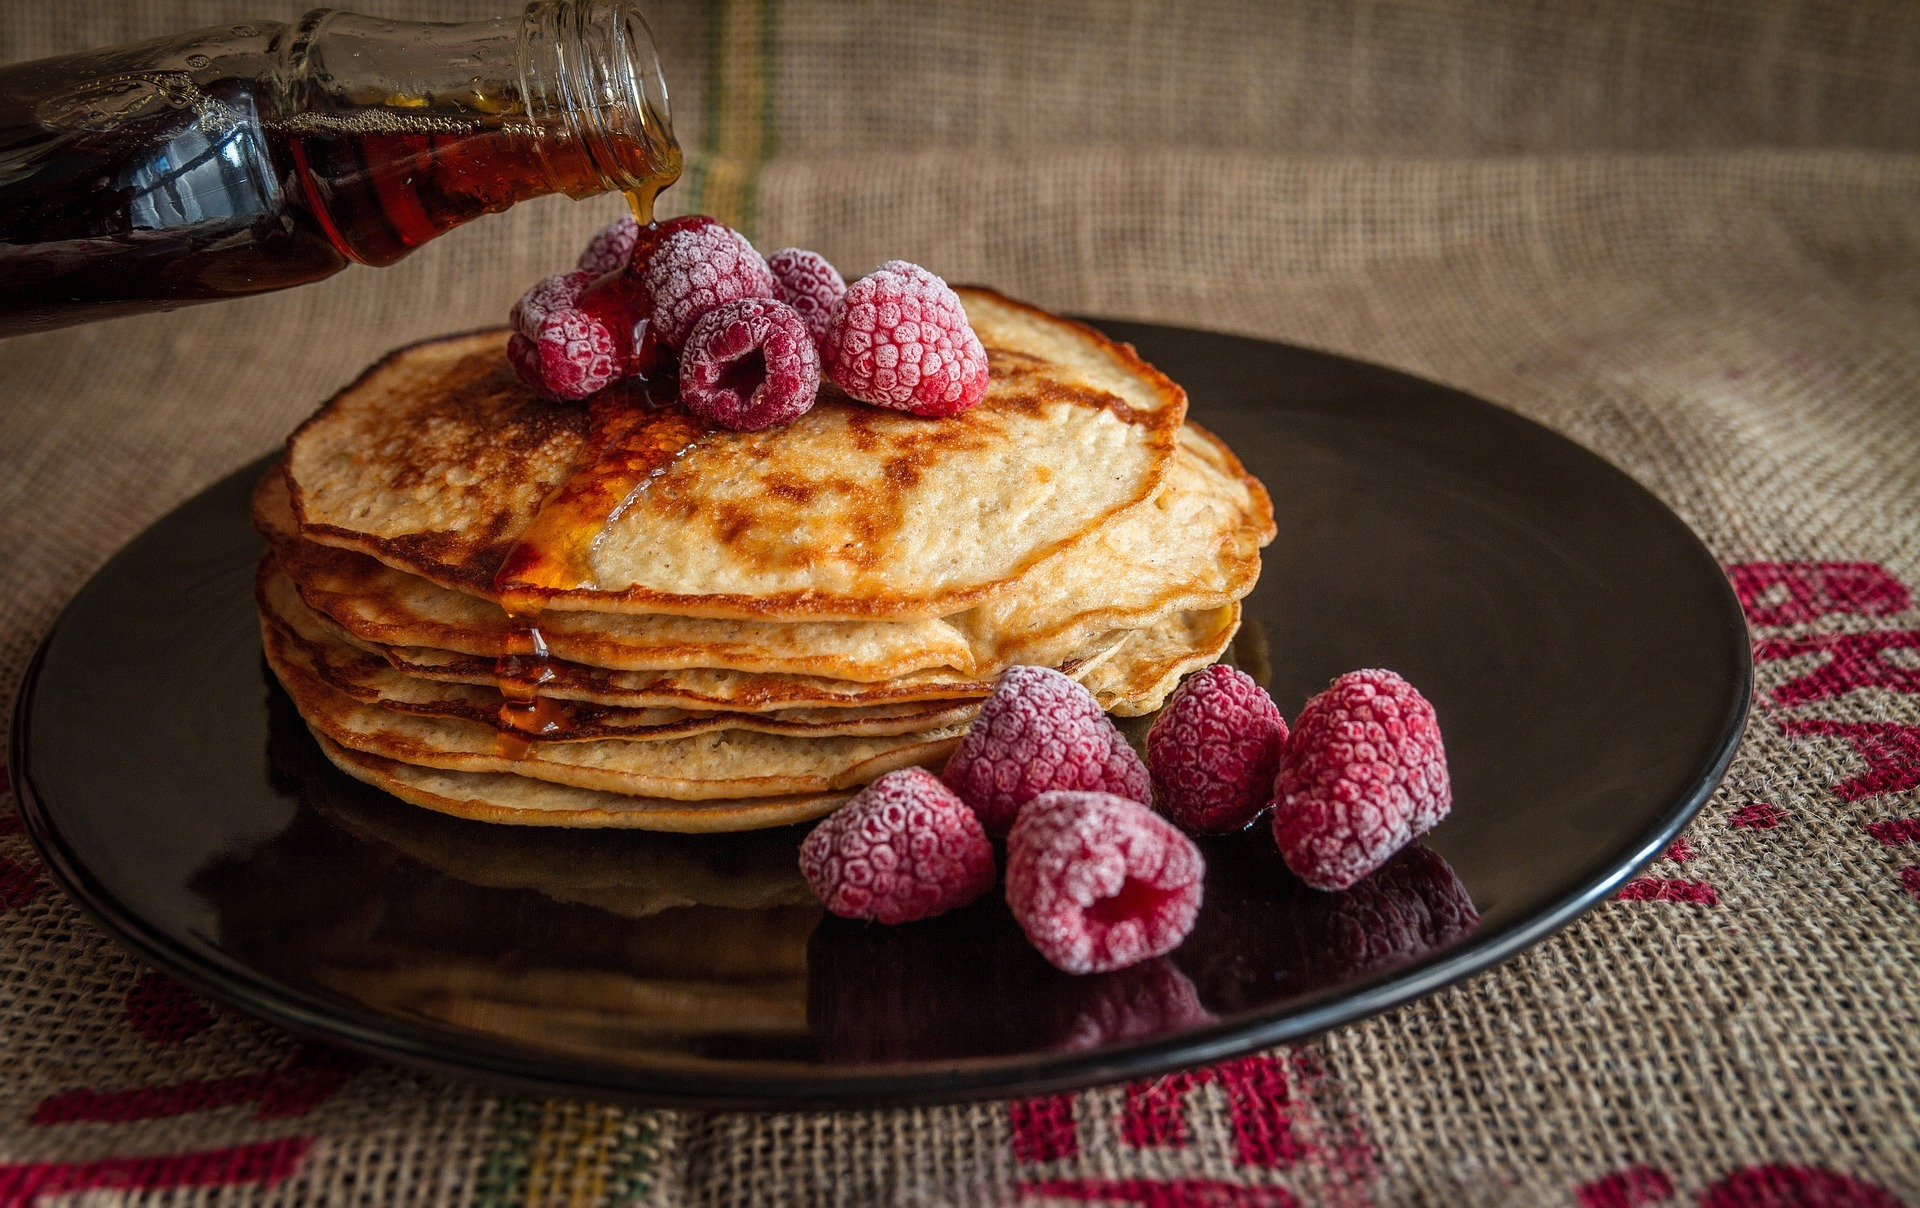 Me Berry Pancakes: Some type of berry pancakes are one of my go-to breakfasts. I have Me Berry Pancakes at least once a week. I love them because I can enjoy the luscious pancake goodness while knowing I'm eating healthy and staying on my chosen diet plan.